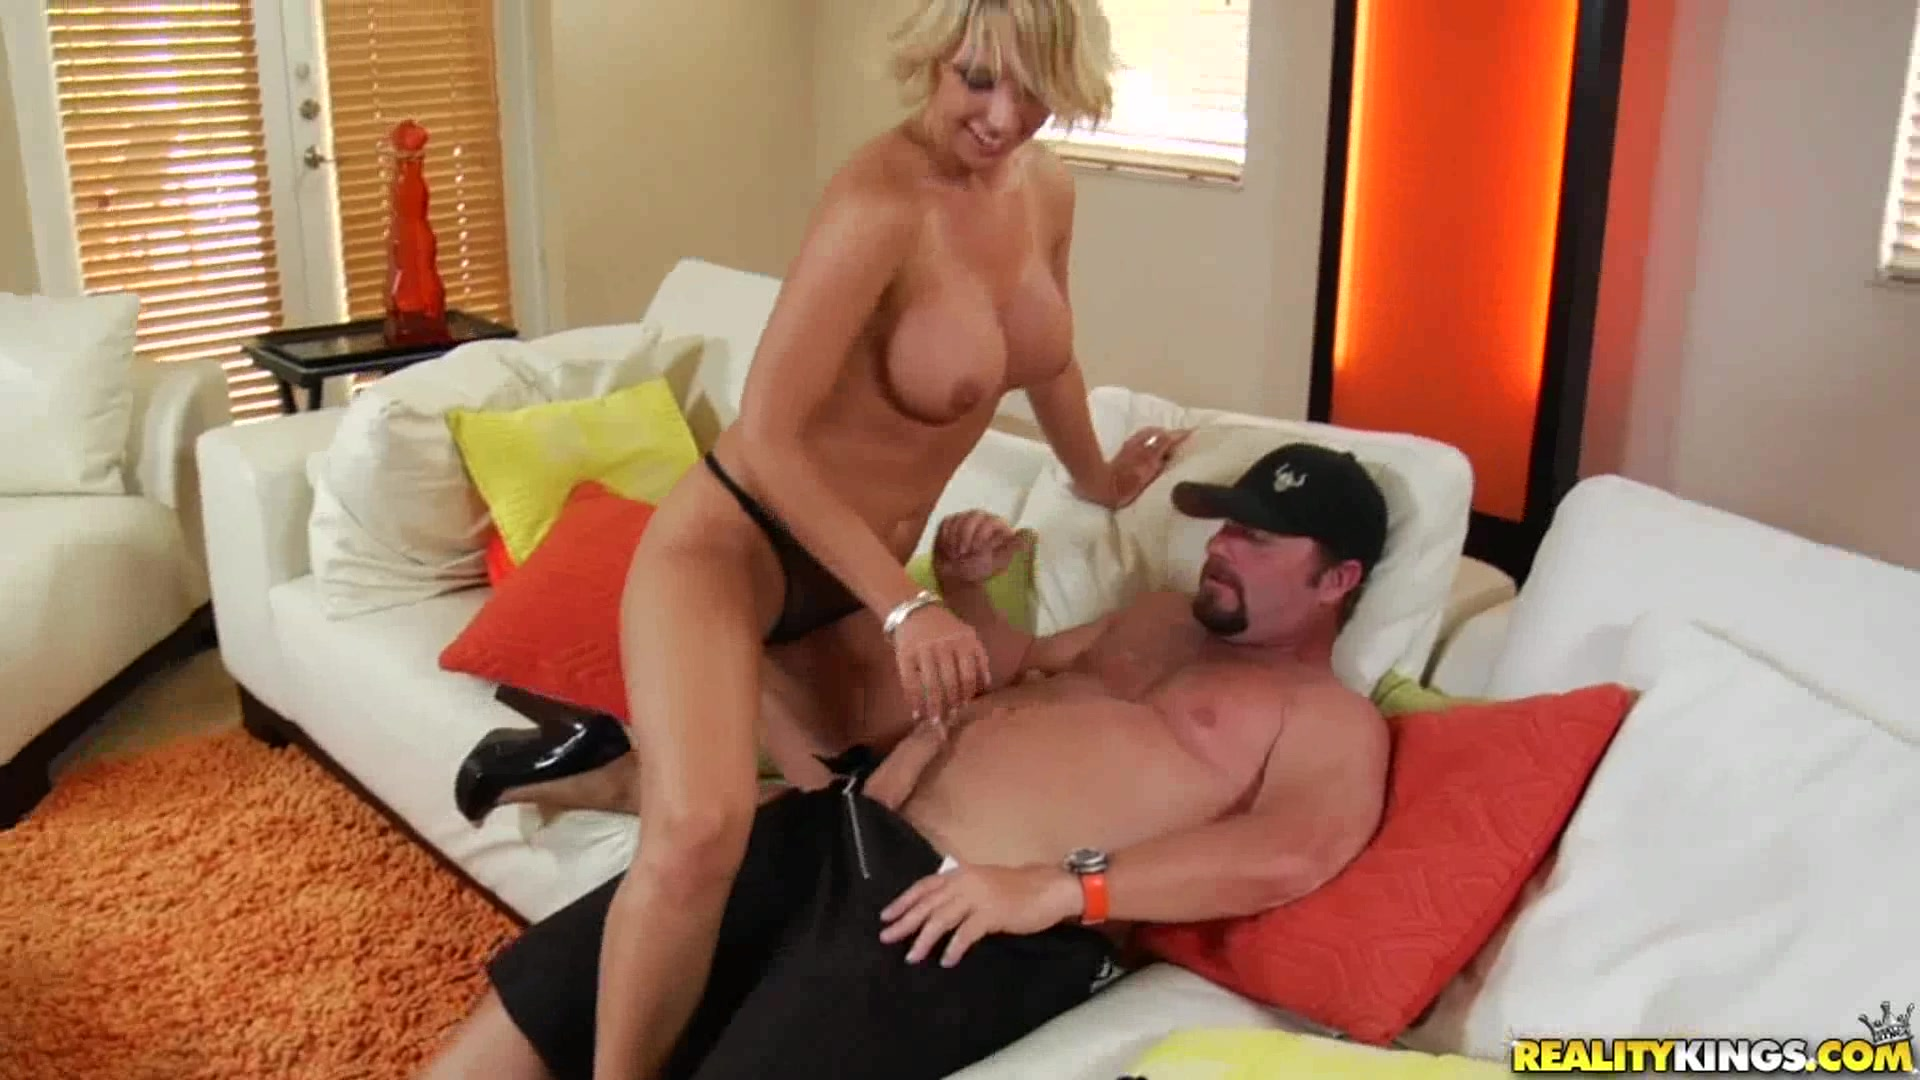 with-glasses-hunter-milf-site-there-video-brothers